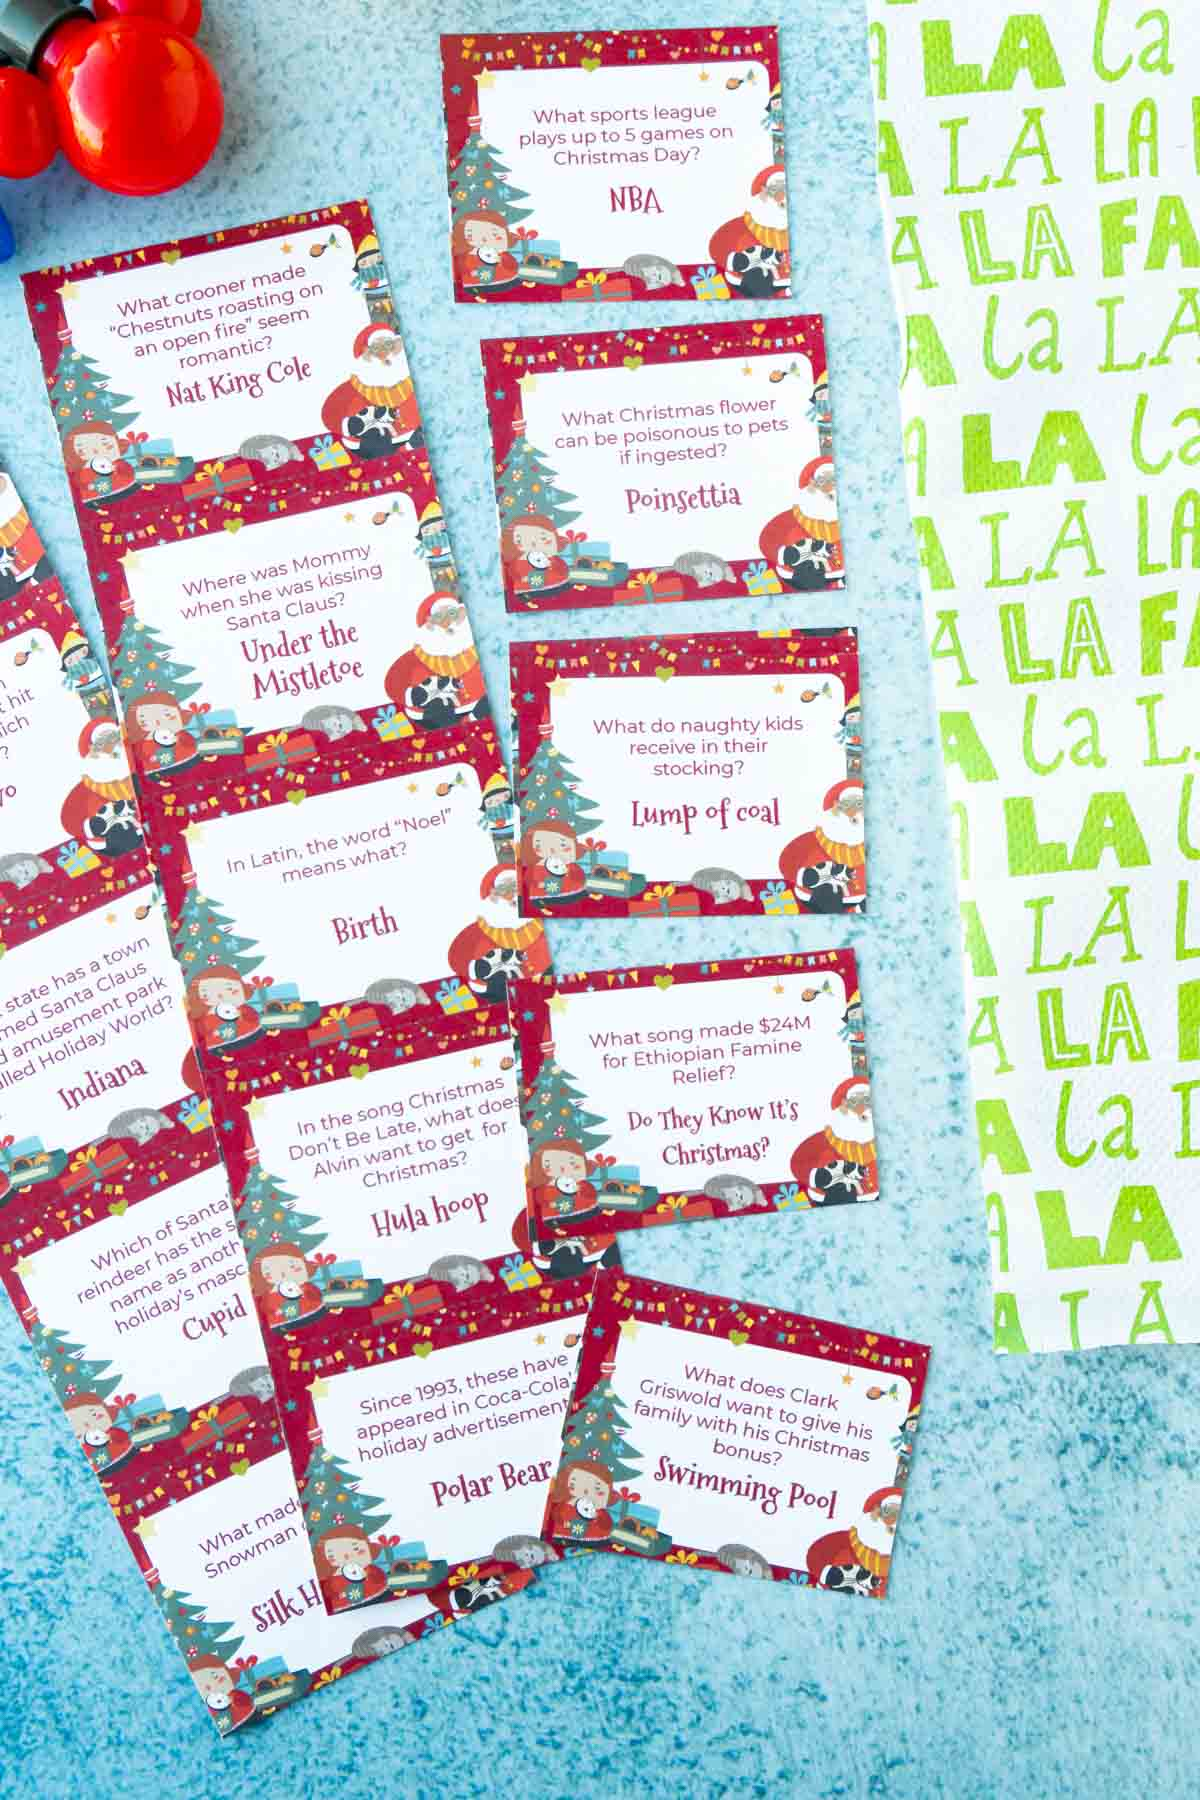 75 Christmas Trivia Questions Free Printable